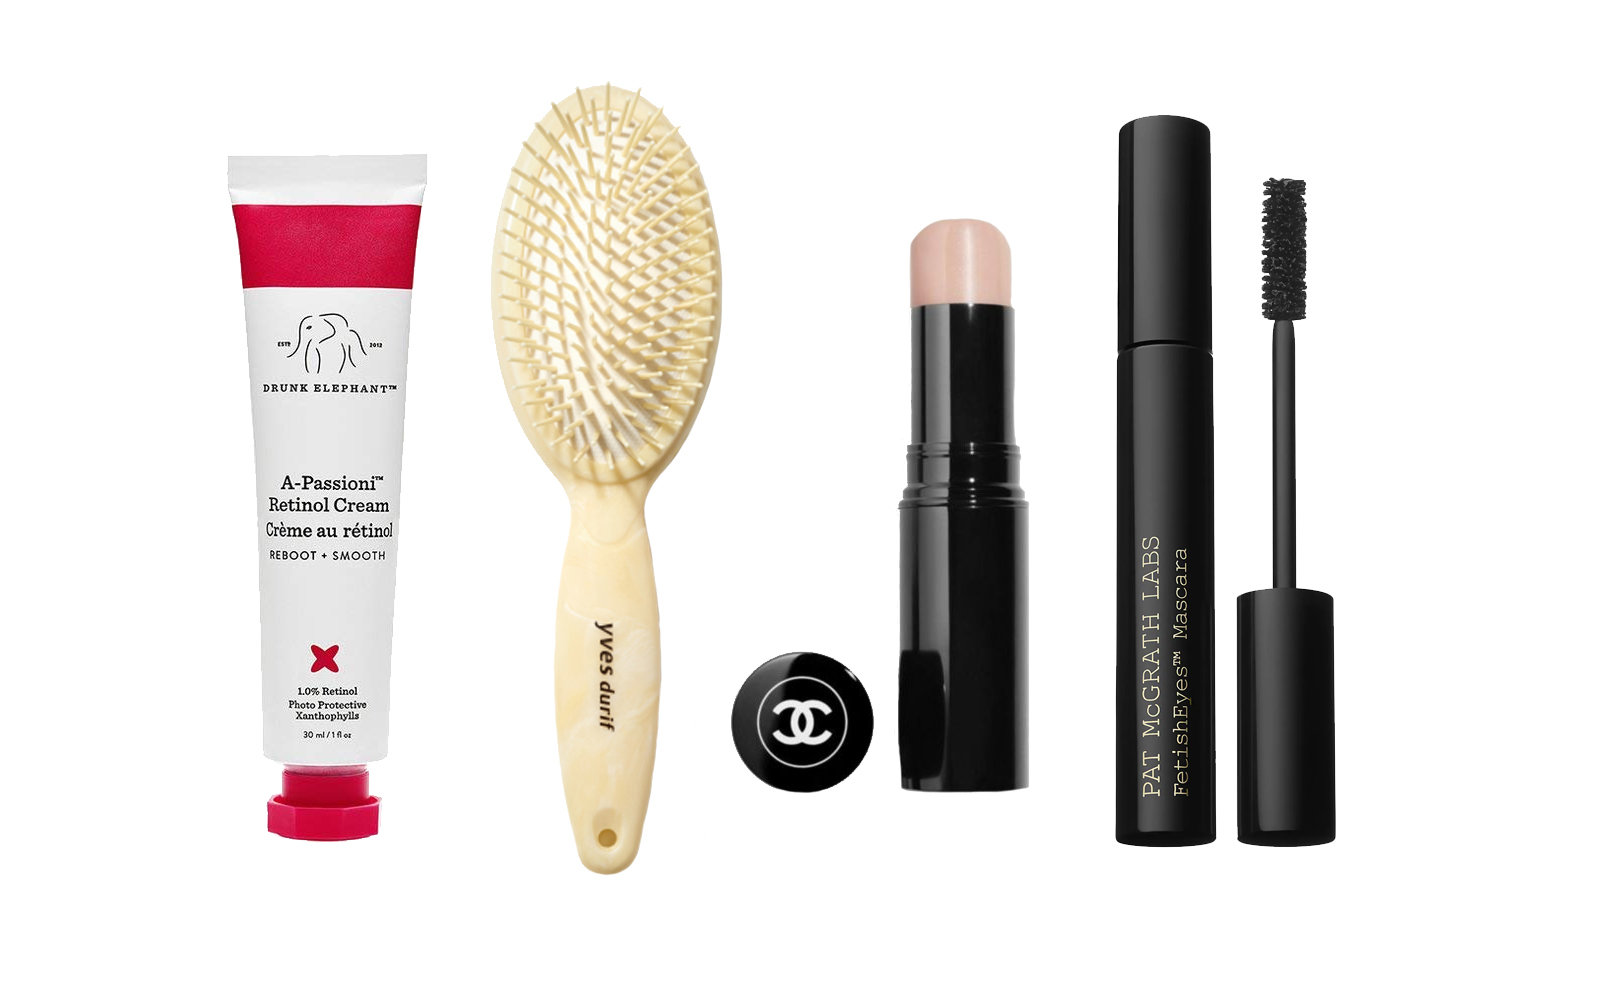 Items Our Editors Pack for Every Single Trip